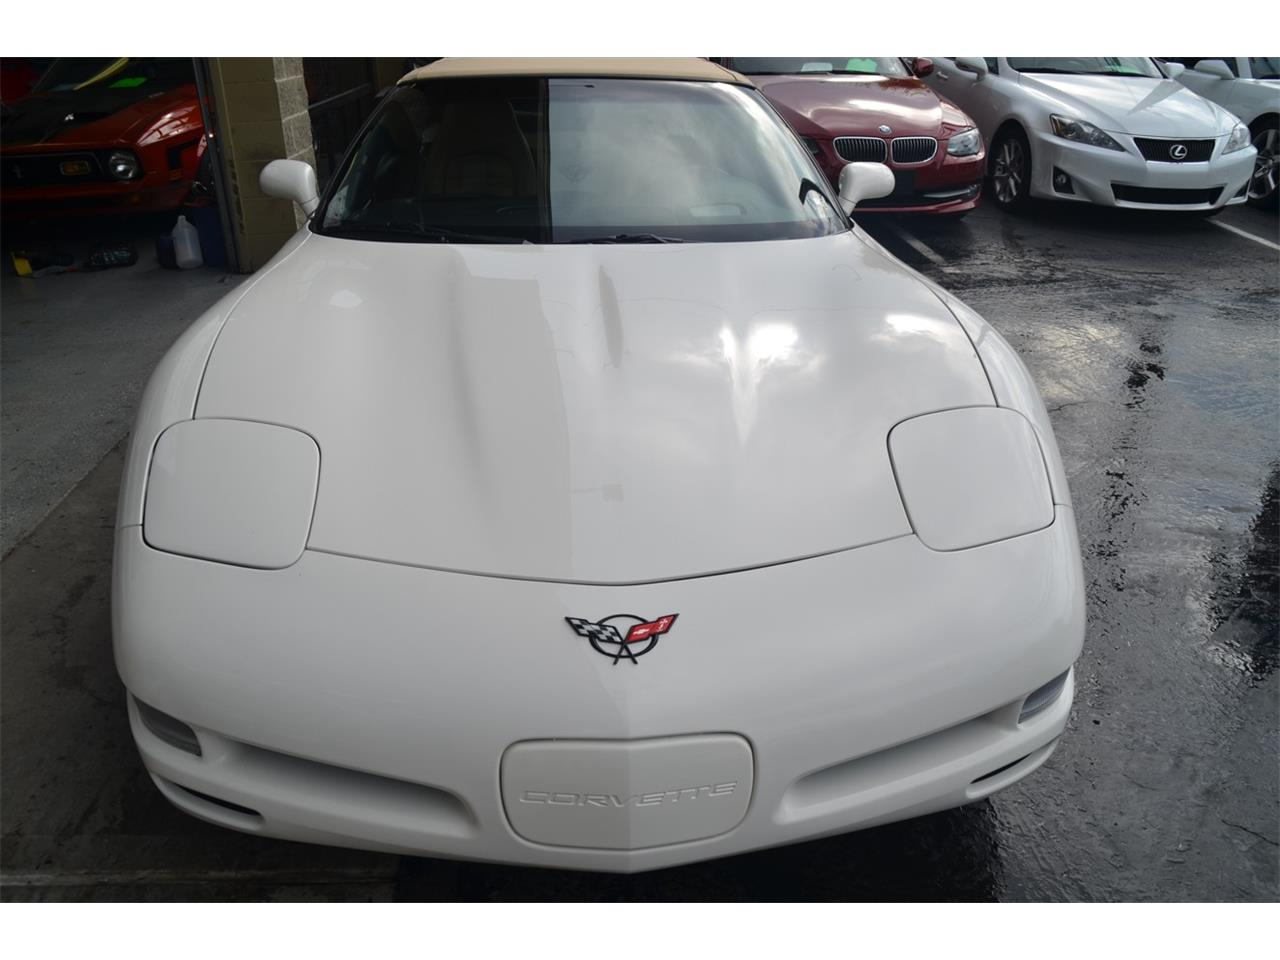 2002 Chevrolet Corvette (CC-1387037) for sale in Huntington Station, New York